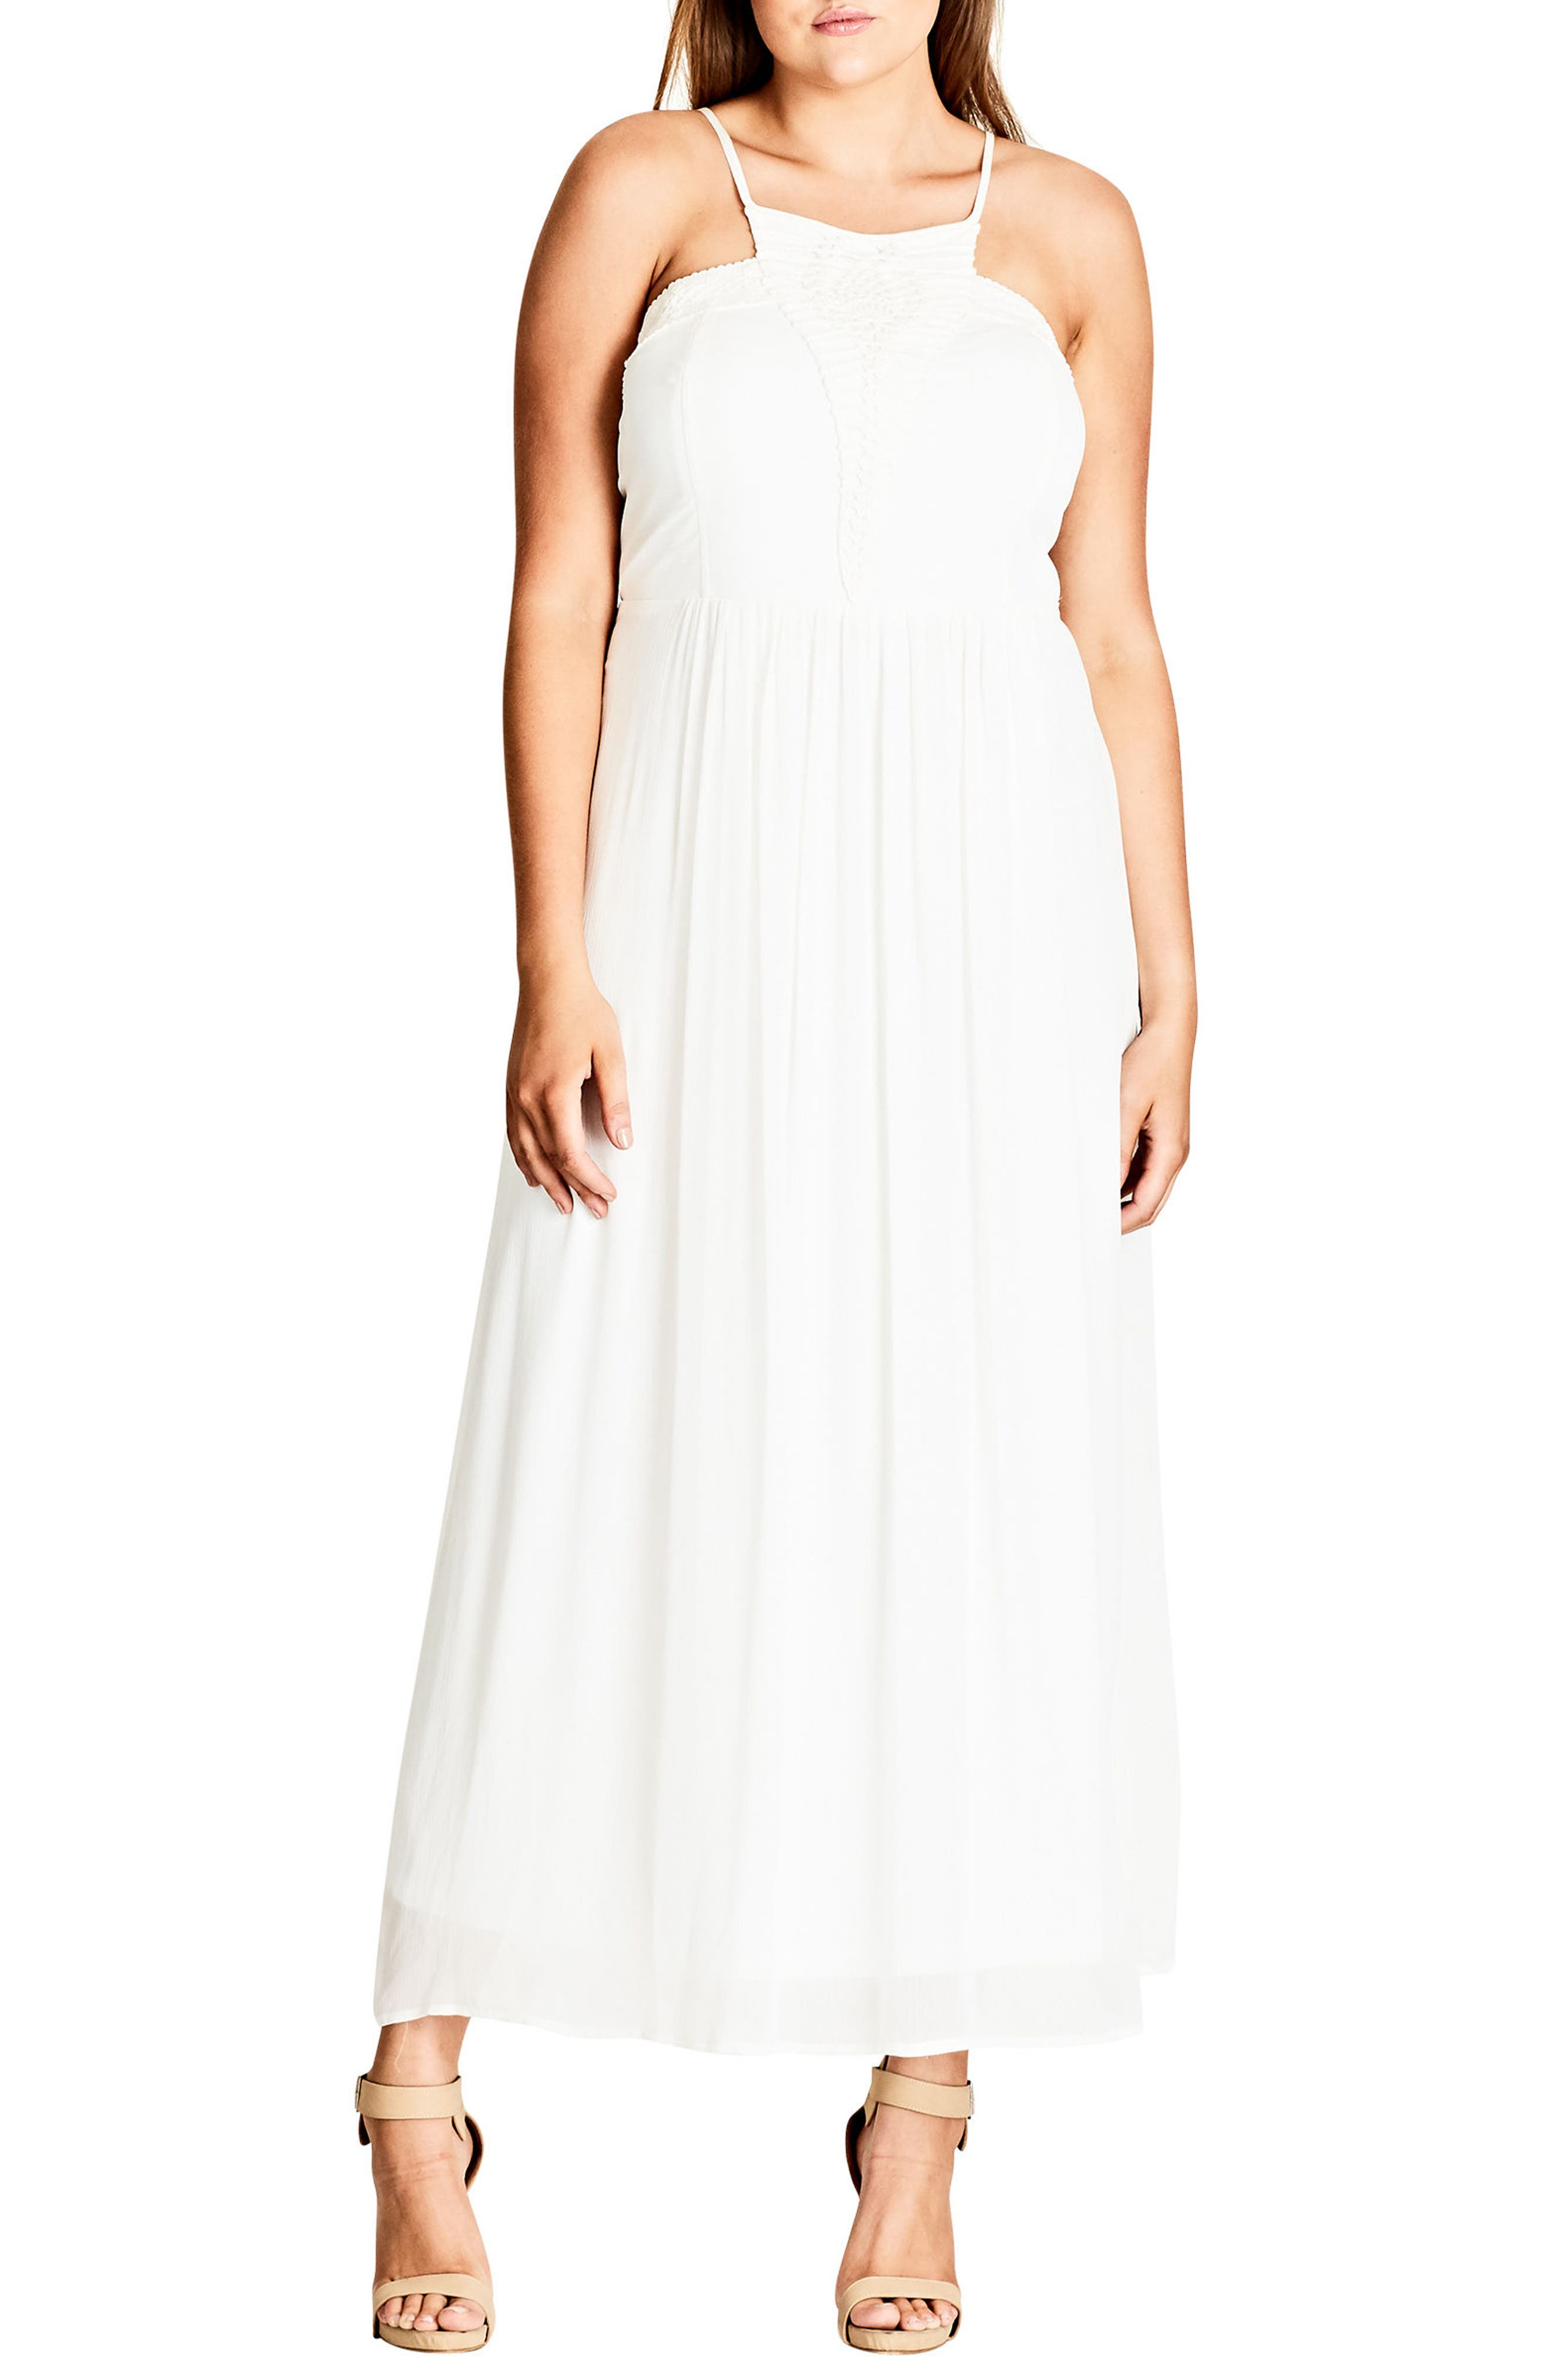 Purity Halter Style Maxi Dress,                             Main thumbnail 1, color,                             909